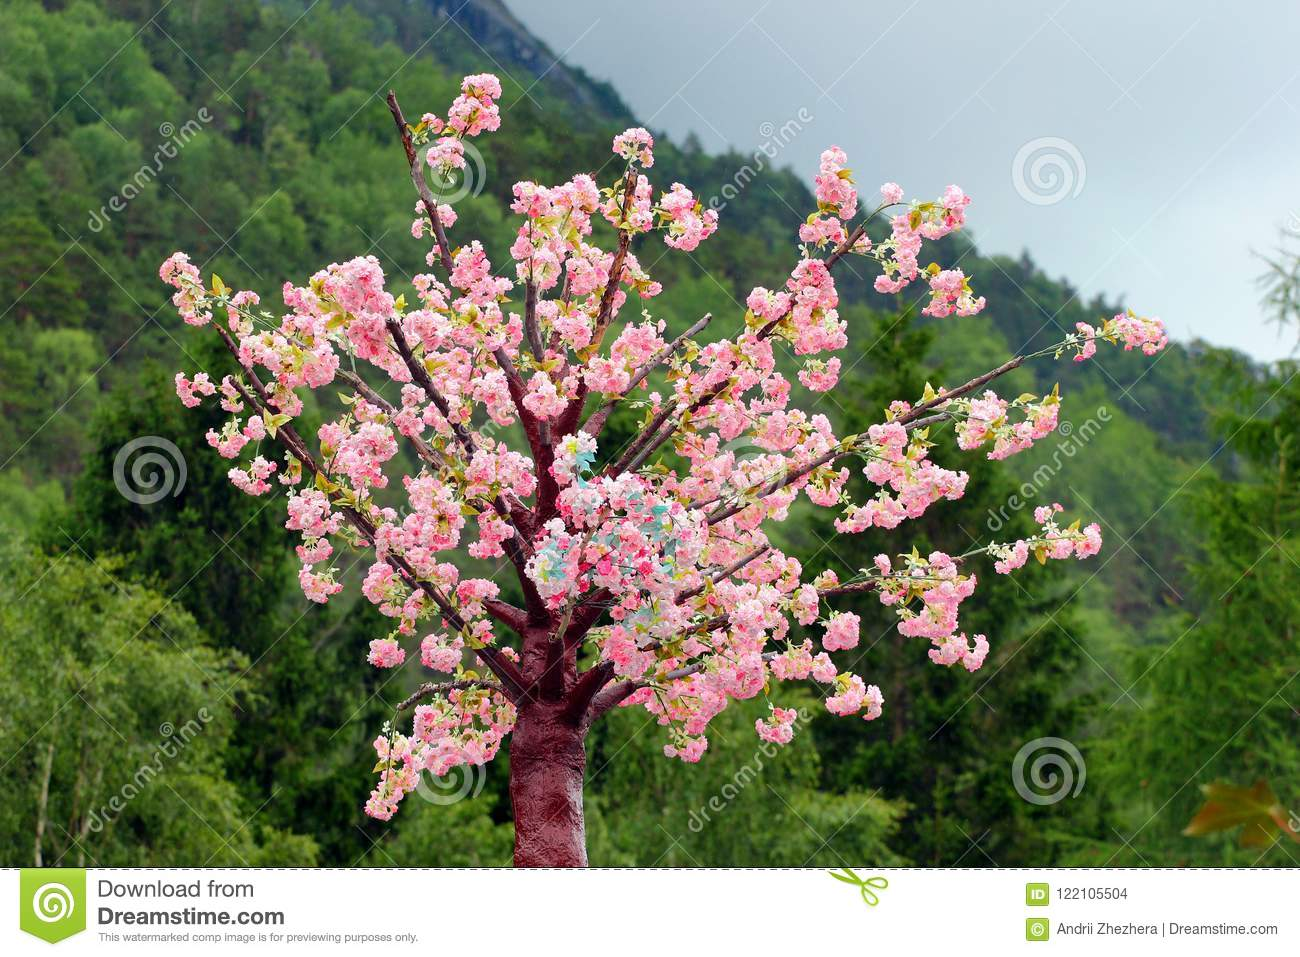 Artificial Tree With Pink And White Flowers Stock Photo Image Of